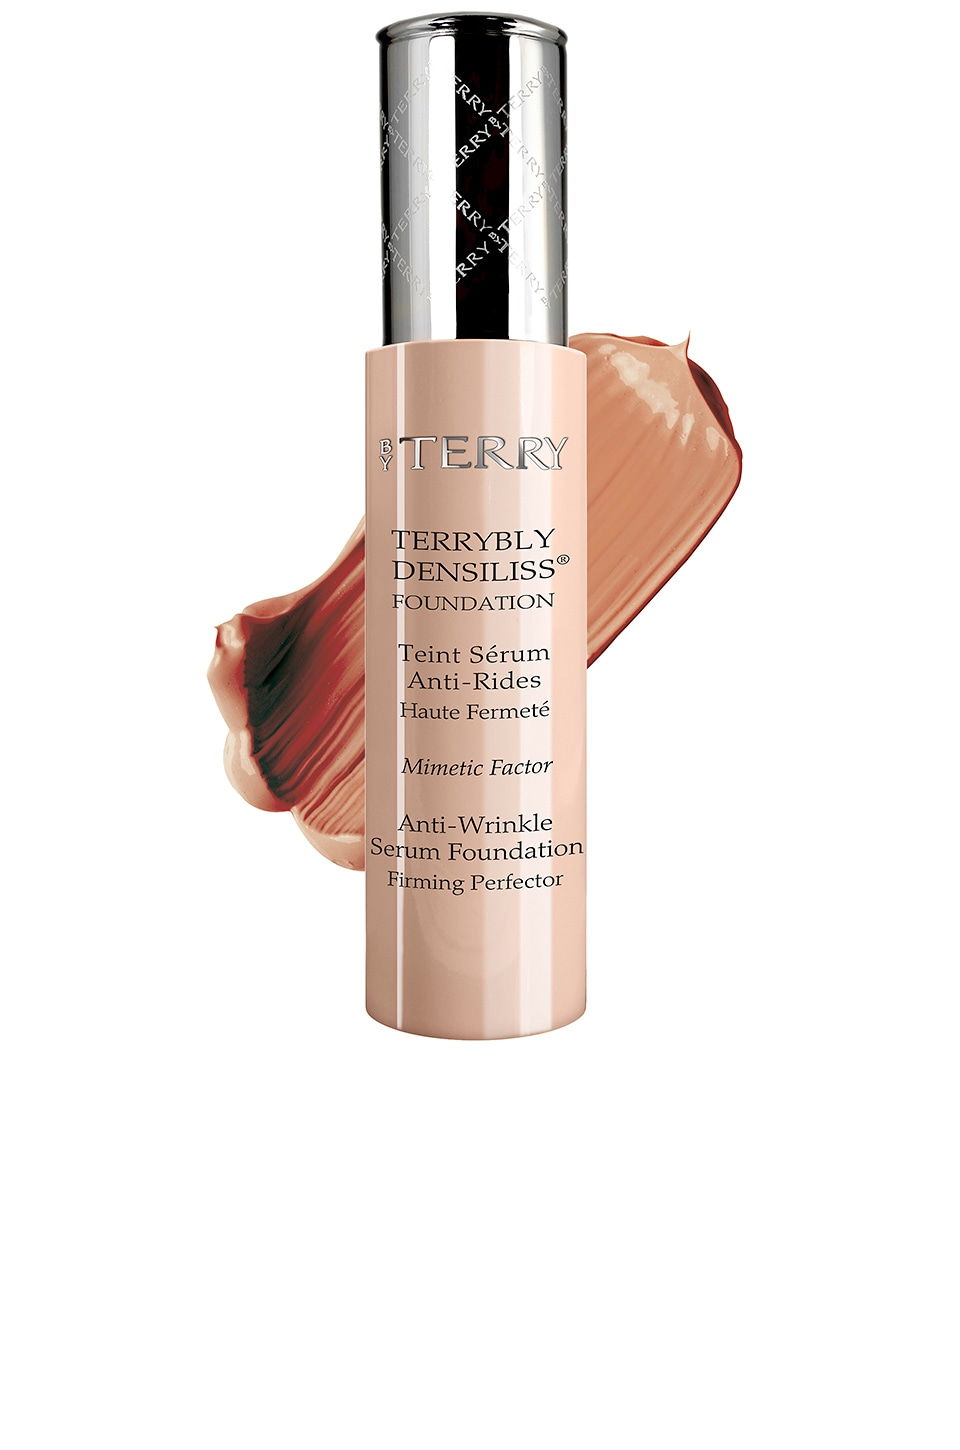 By Terry Terrybly Densiliss Serum Foundation in Warm Sand